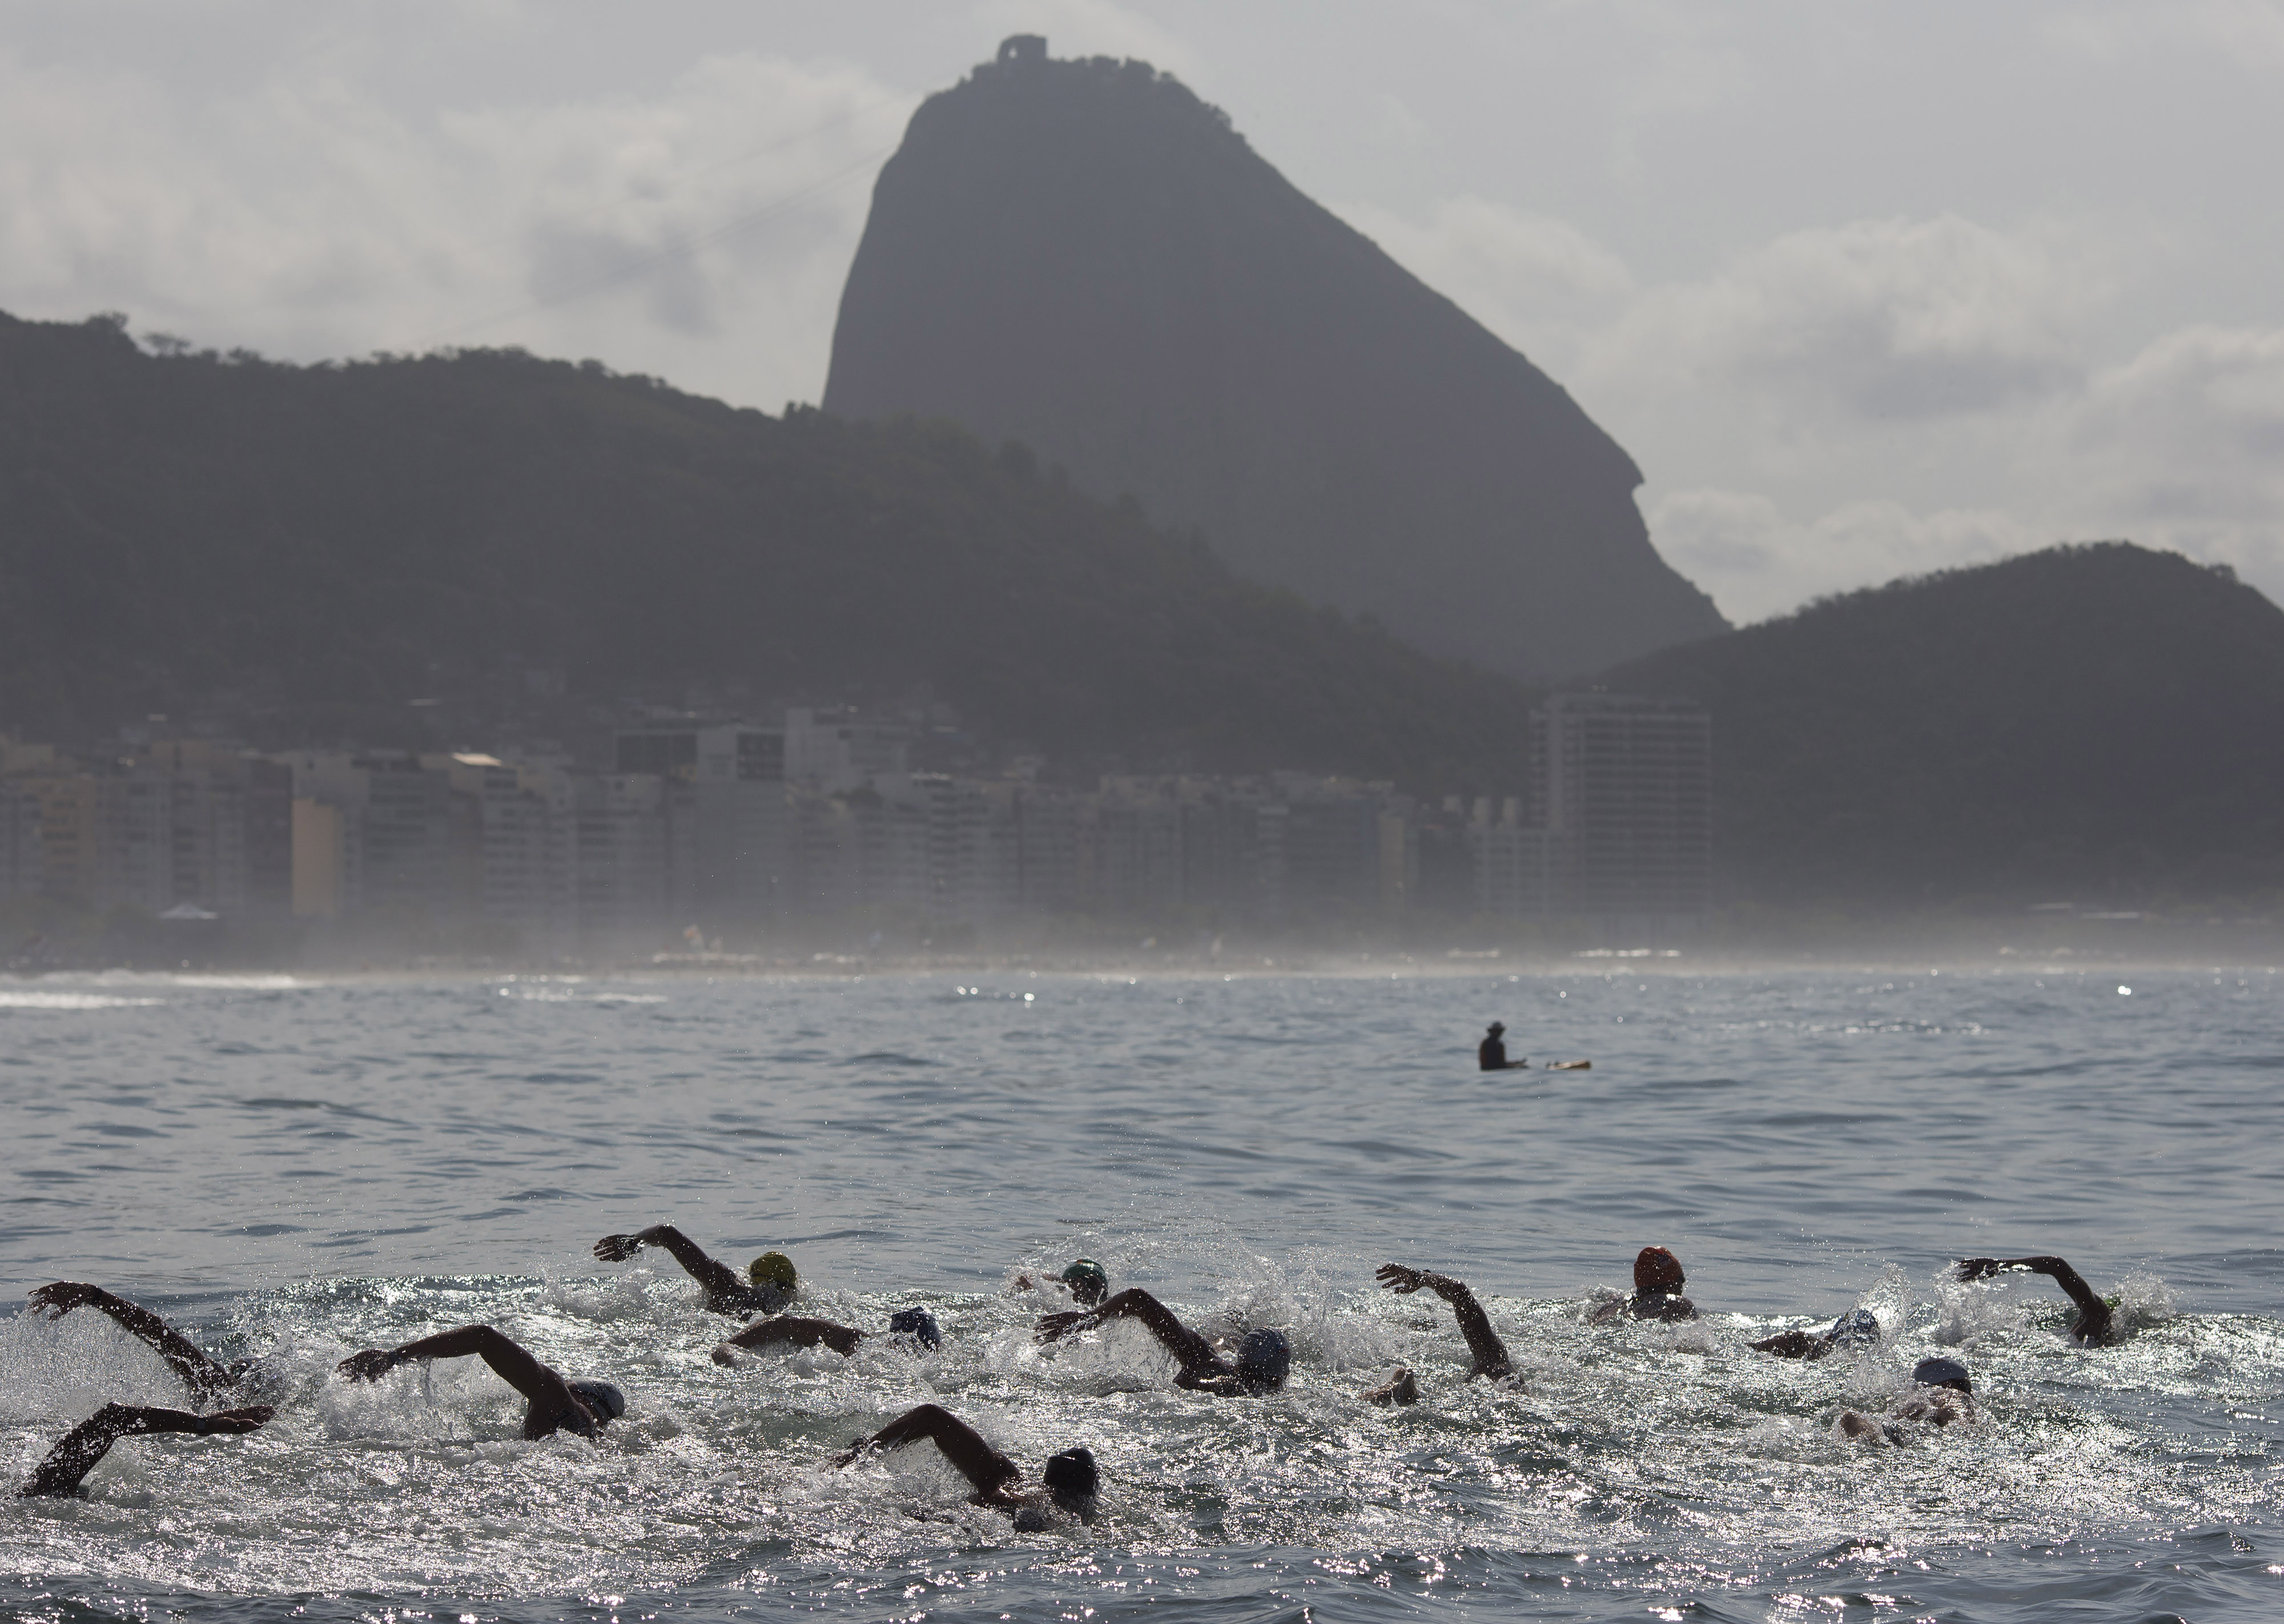 FILE -In this Aug. 22, 2015 file photo, backdropped by Sugar Loaf Mountain, athletes compete in the men's marathon swimming test event, ahead of the Rio 2016 Olympic Games, off Copacabana Beach, Rio de Janeiro, Brazil. Rio's sewage-filled waters are more